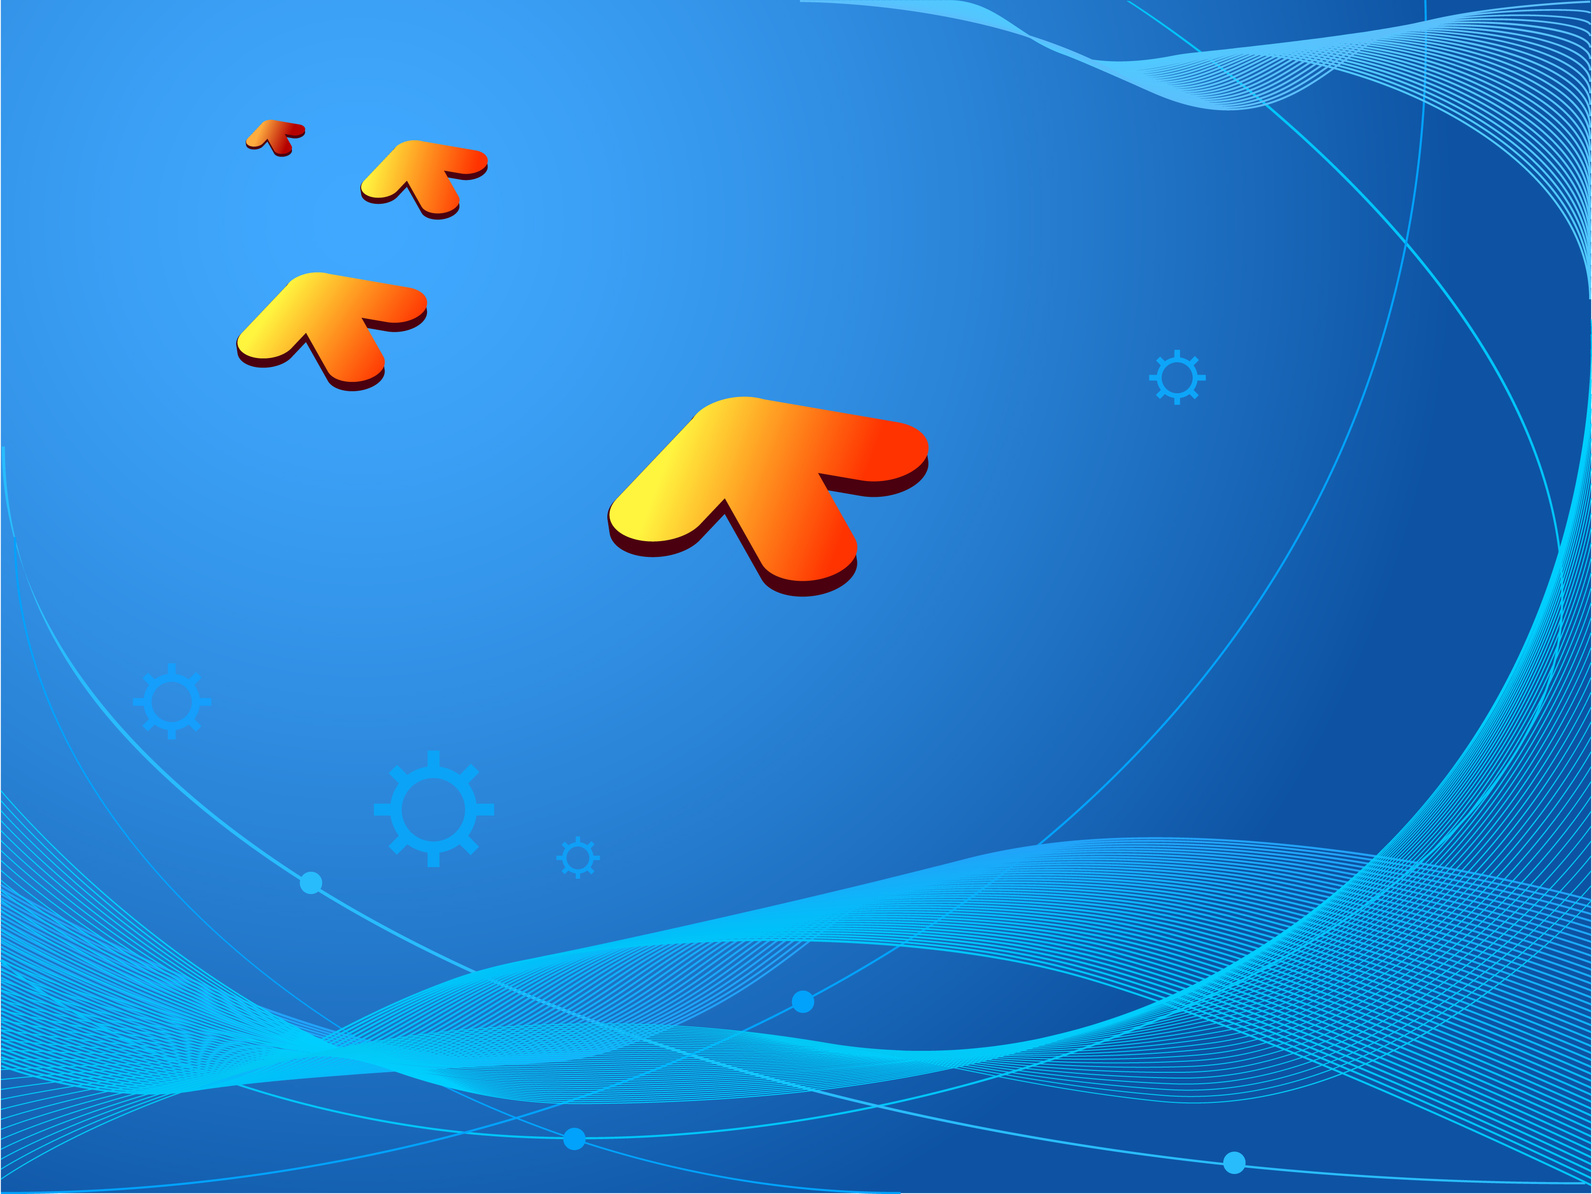 Abstract wallpaper with business concept